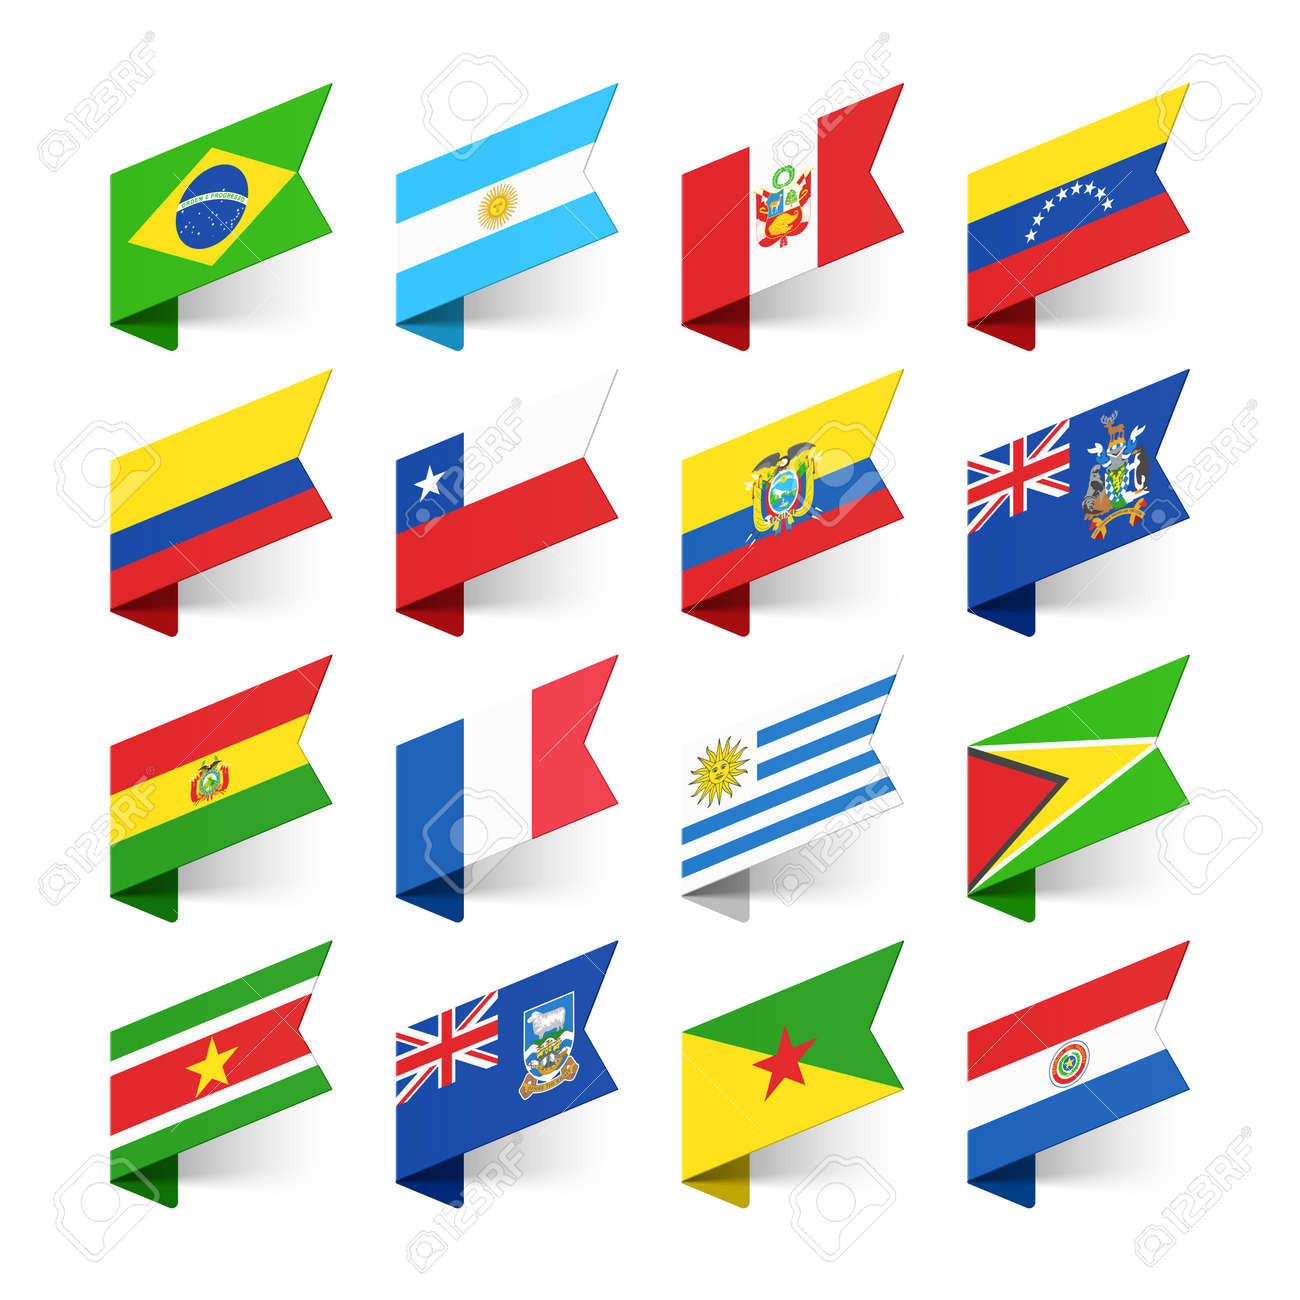 Chile flag stock photos royalty free business images flags of the world south america biocorpaavc Images